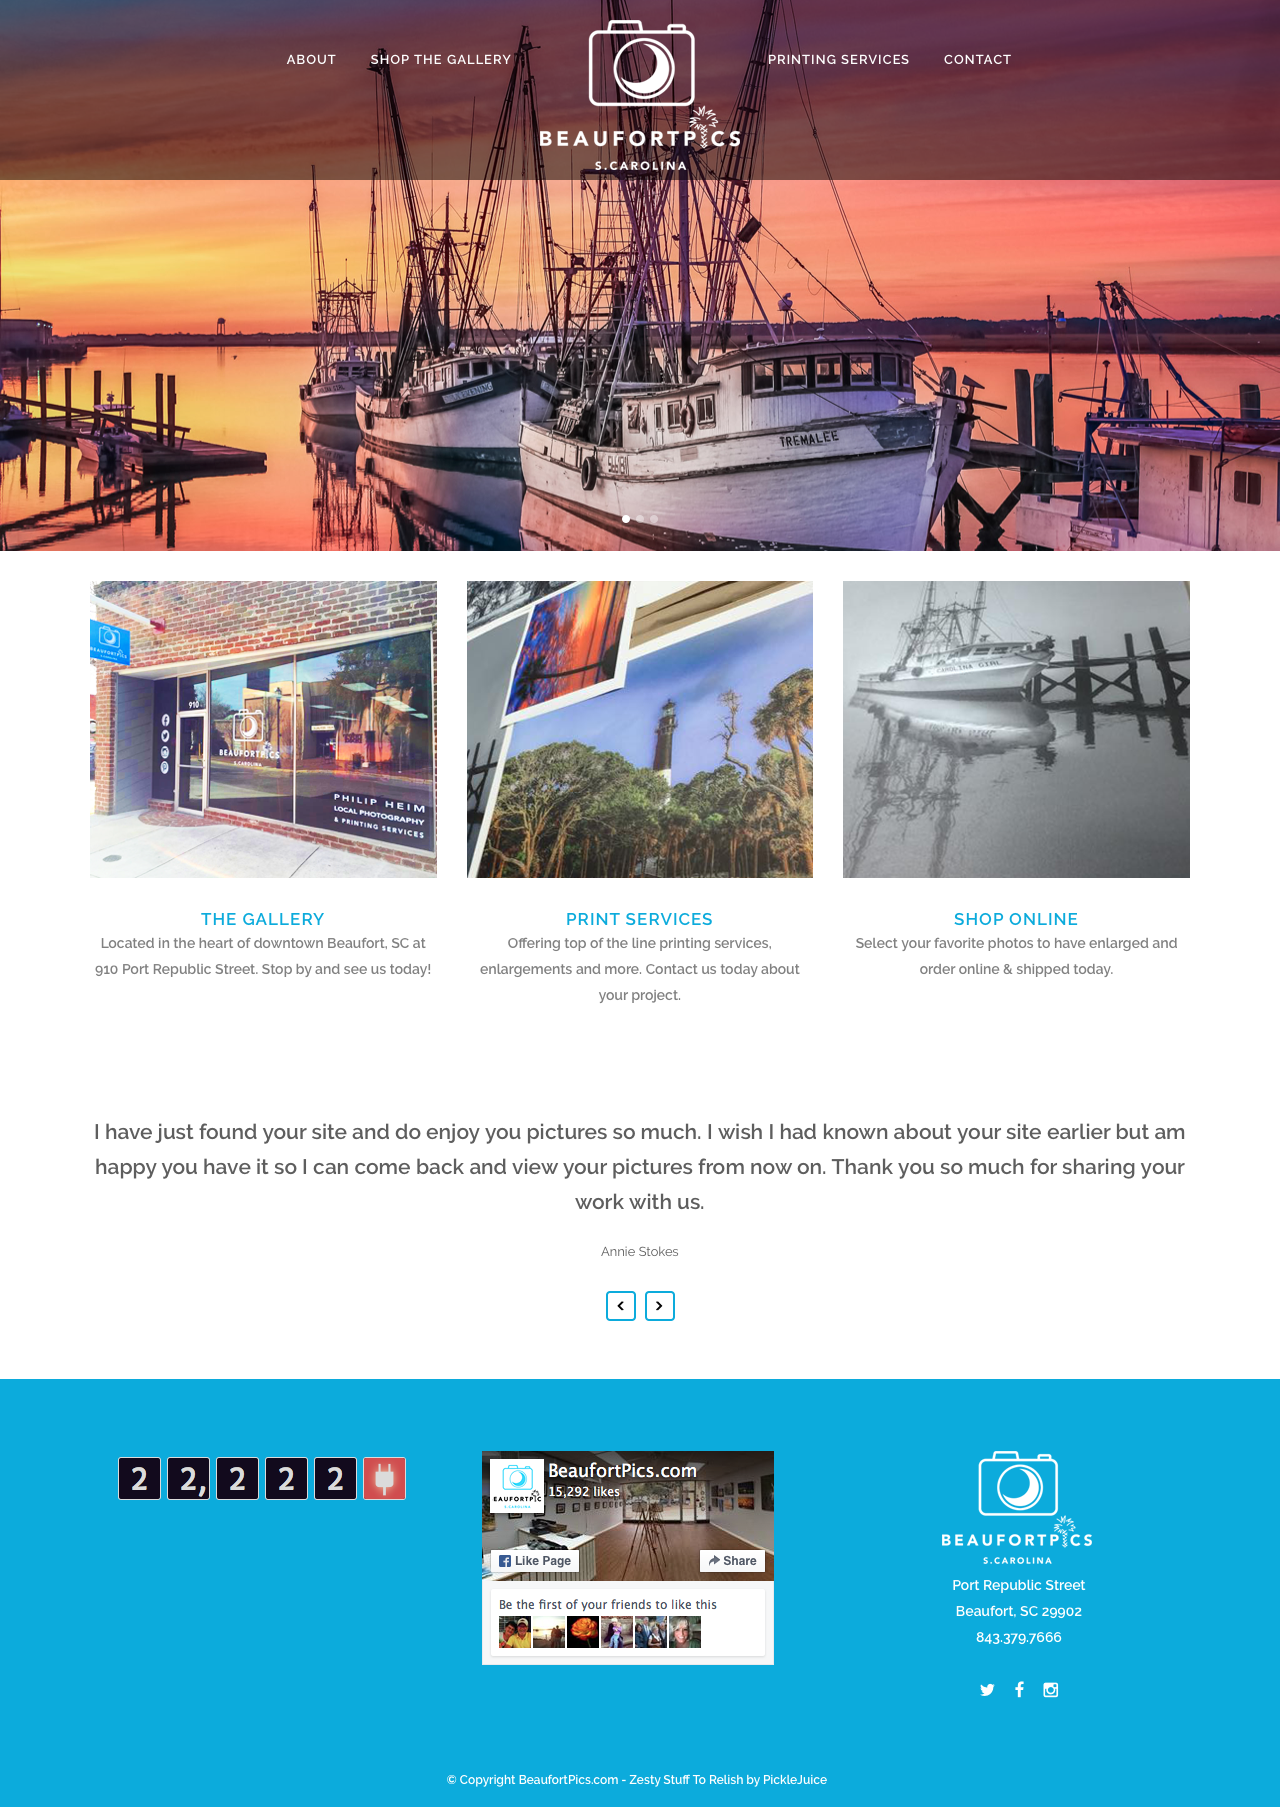 Beaufort Website Design | BeaufortPics.com | PickleJuice Productions